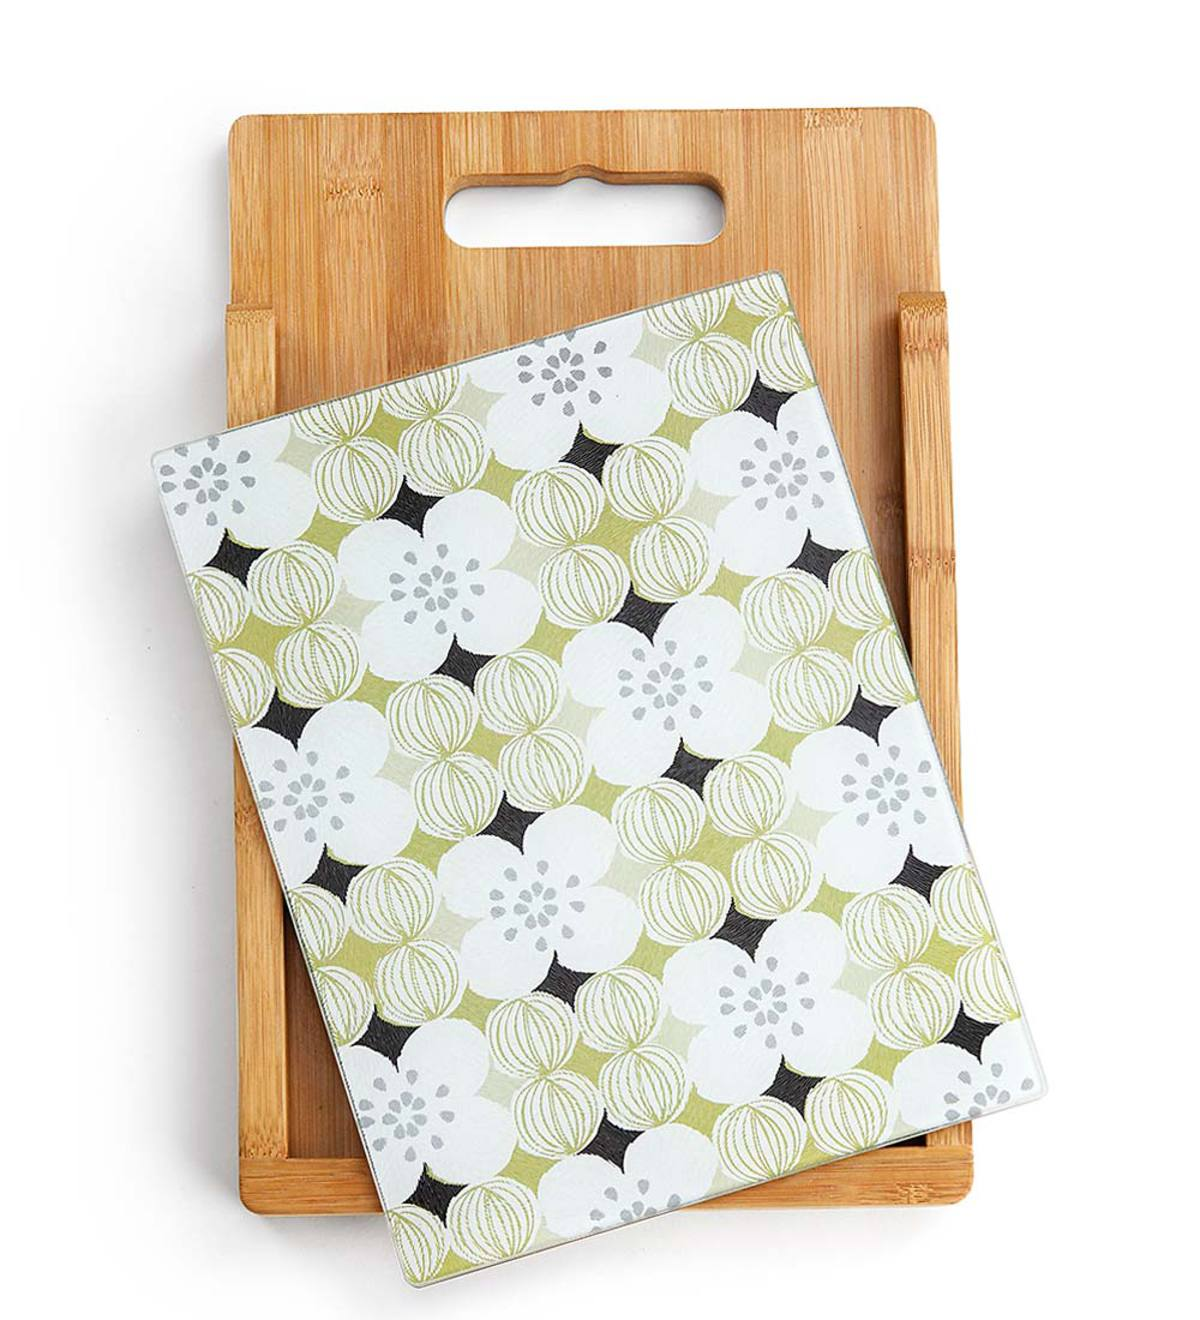 Wood and Glass Floral-Patterned Cutting Board